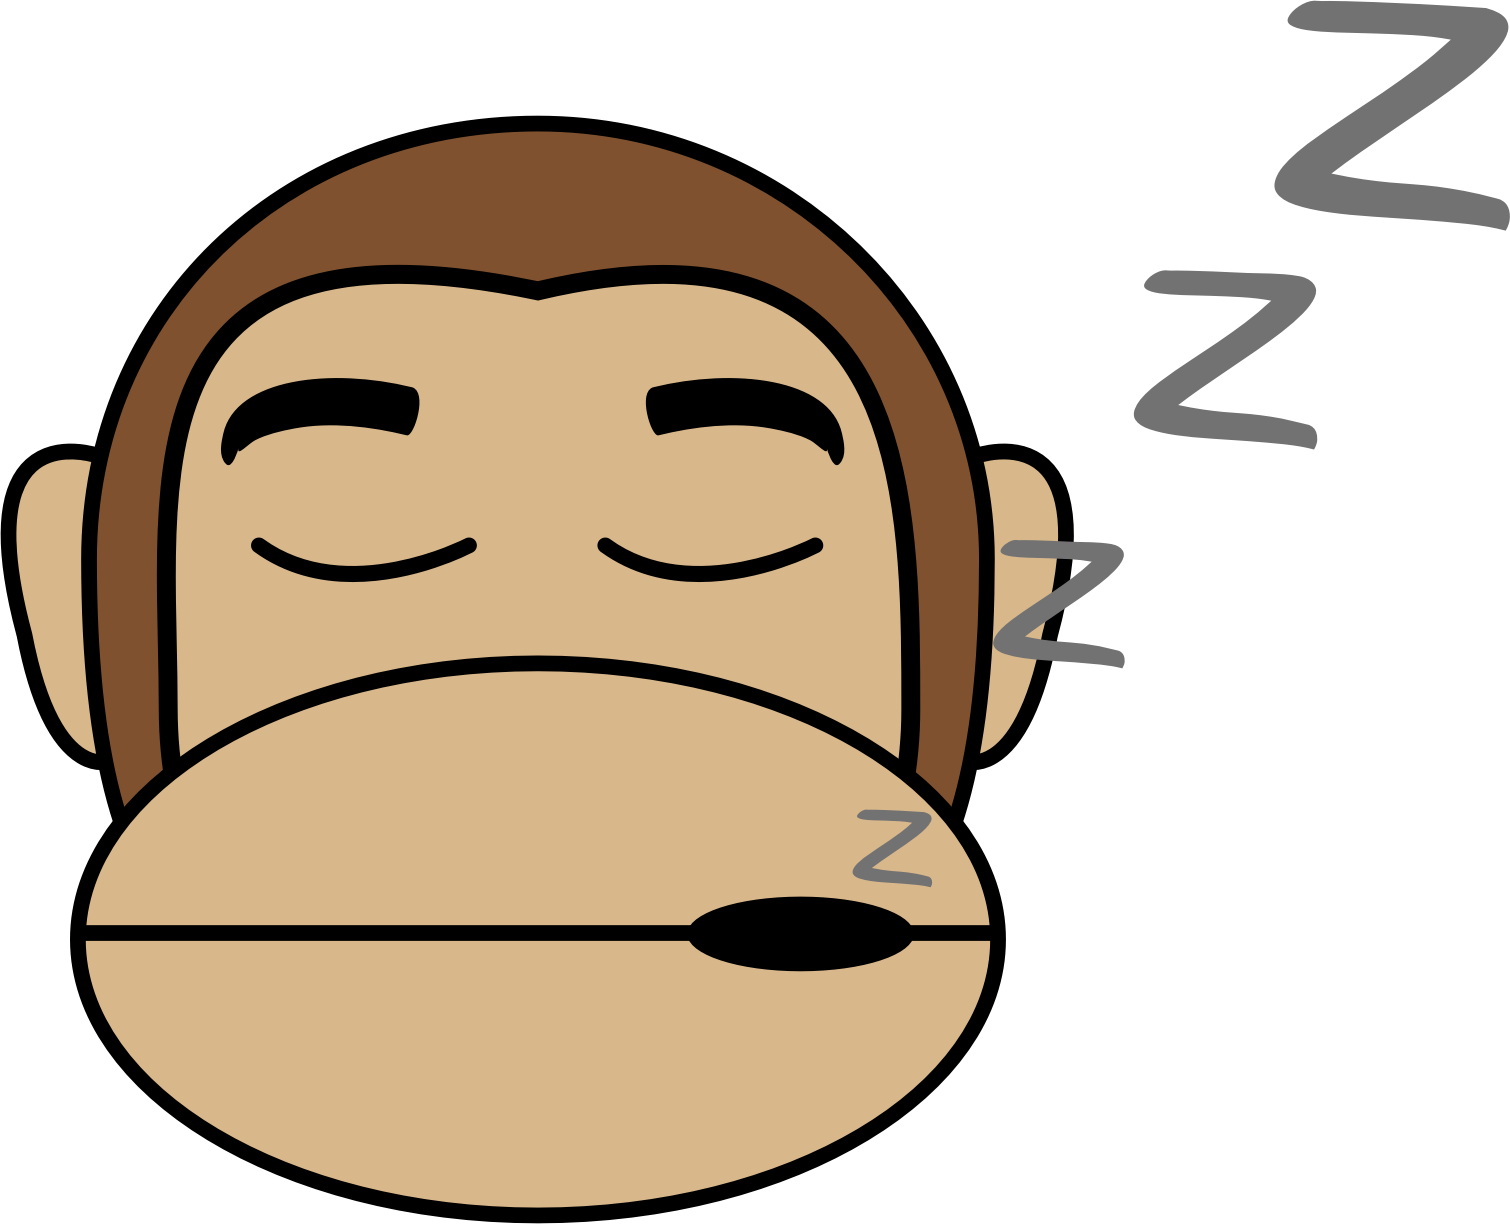 Sleeping in book clipart banner transparent download Clipart - Monkey Emoji - Sleep banner transparent download